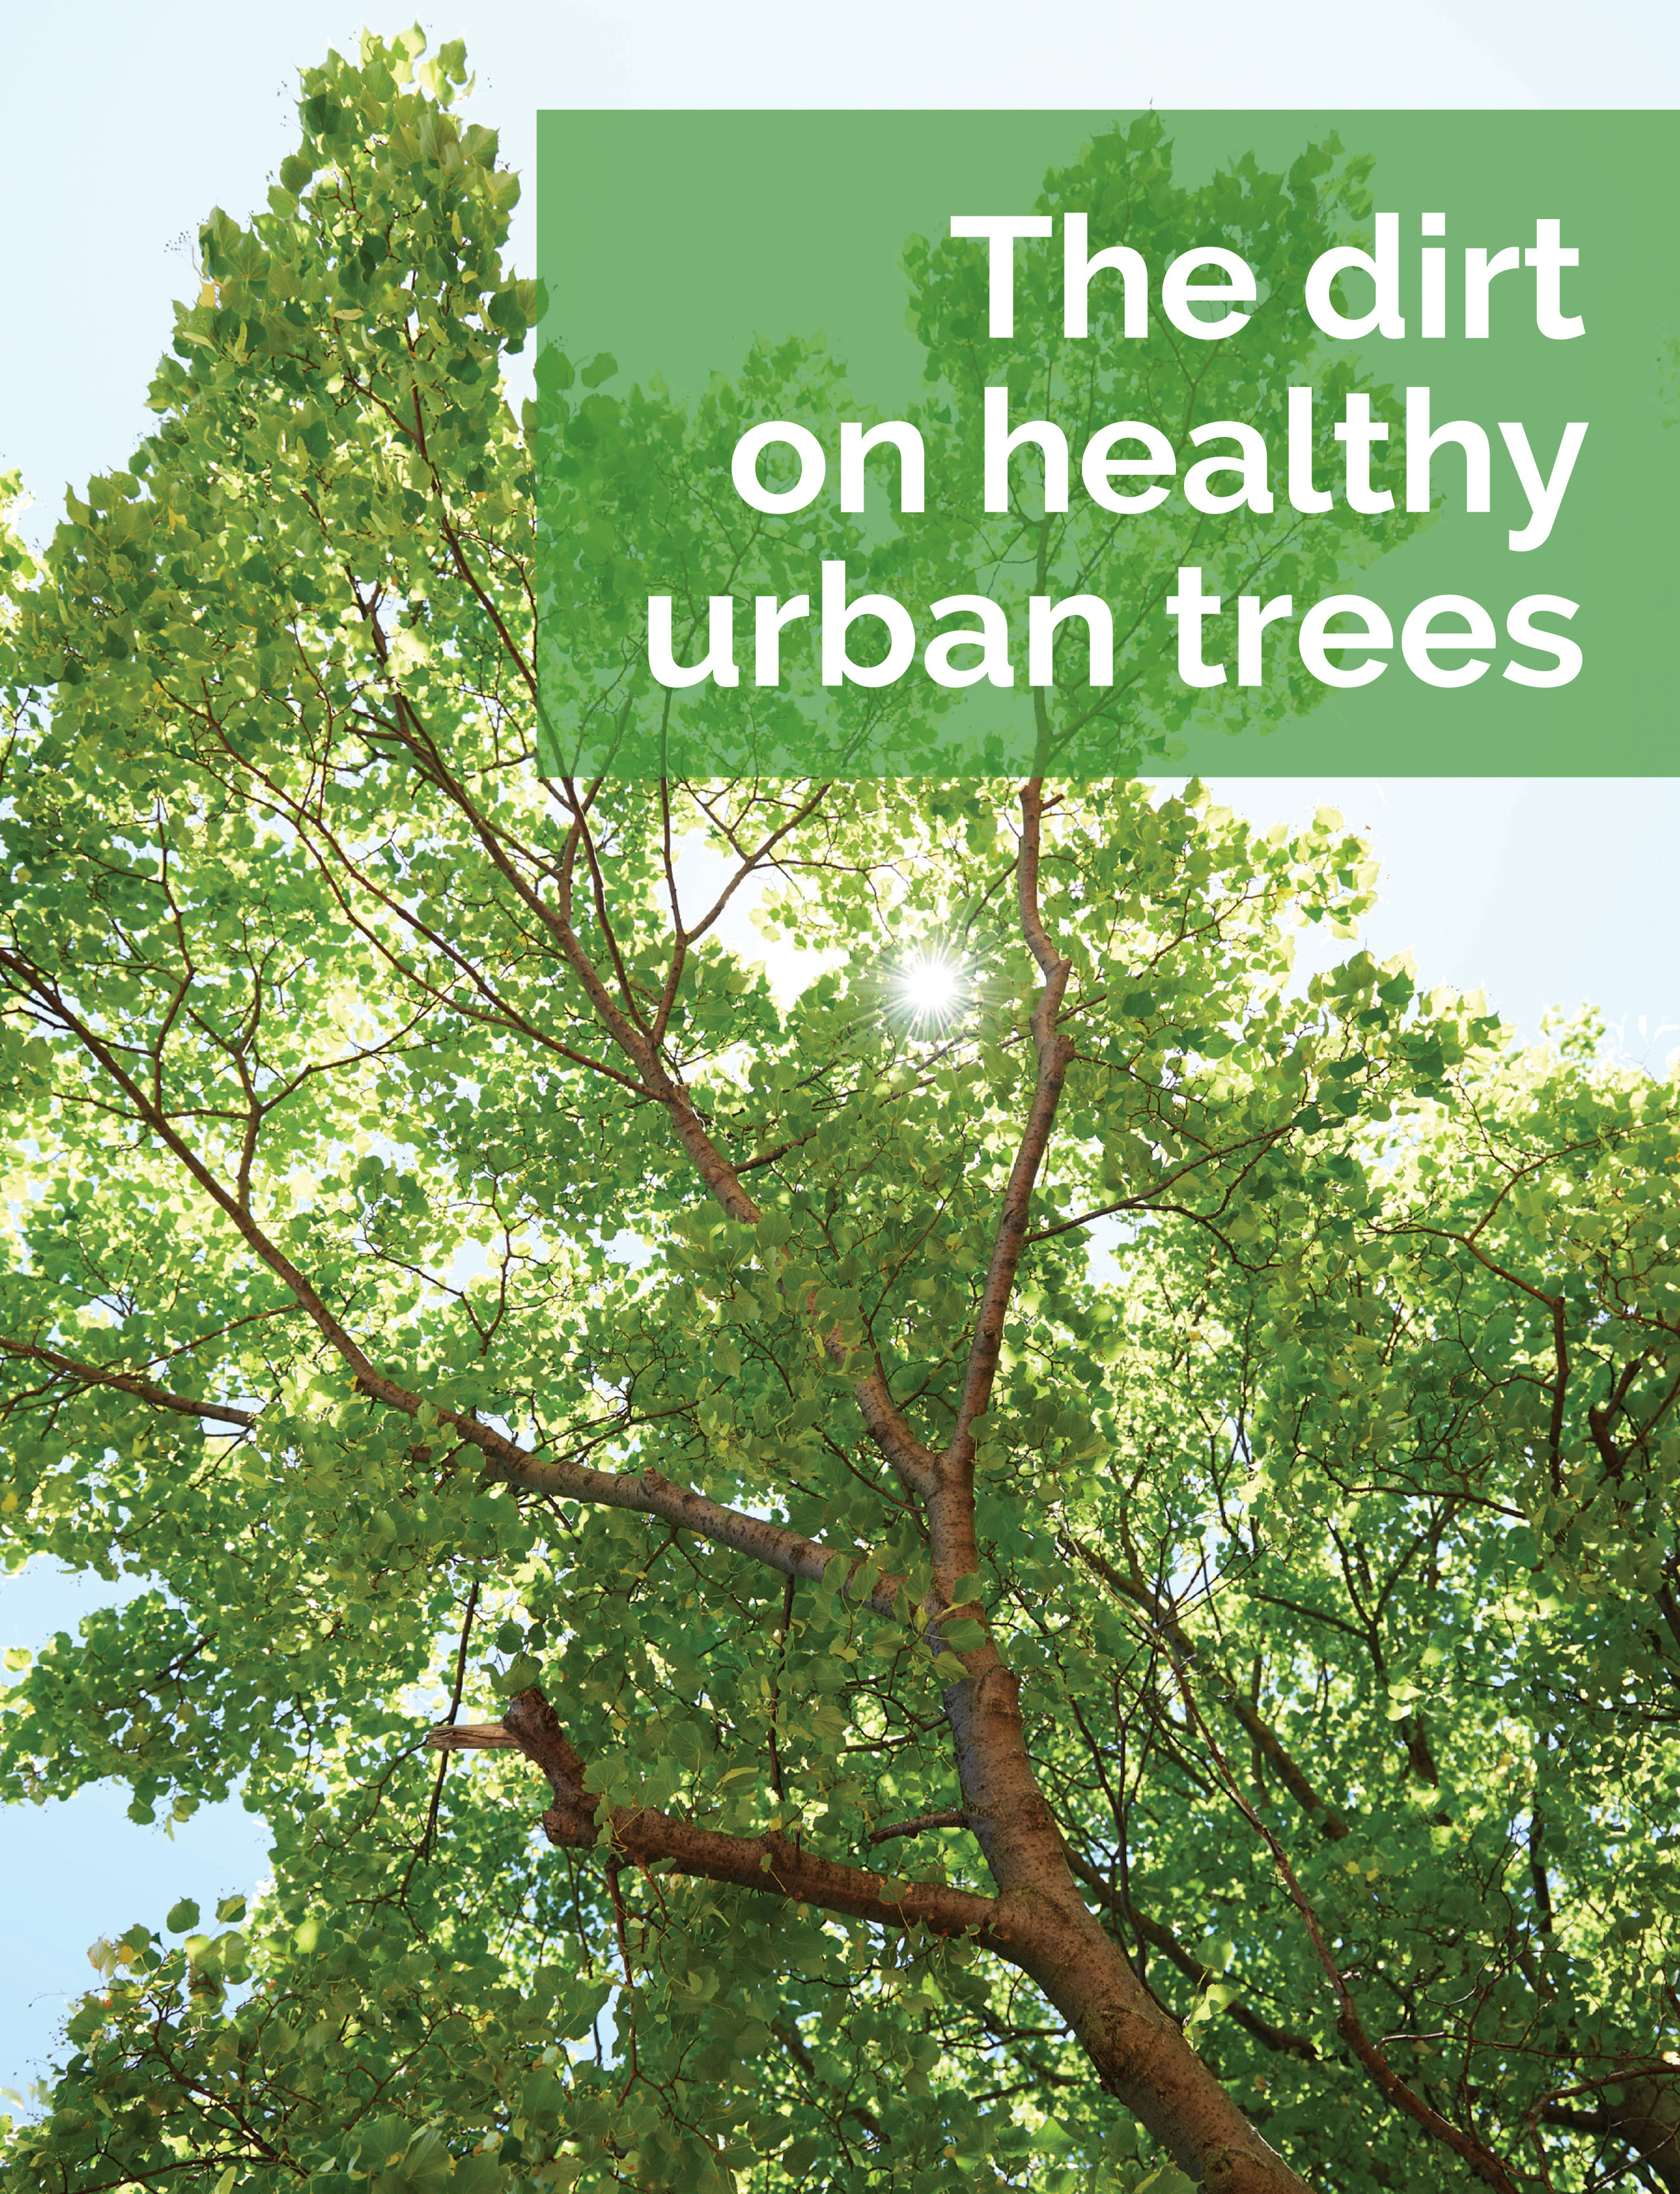 Marta-Hewson-Advertising-urban-tree-planning-Innovation-Report-Vinland-Research.jpg